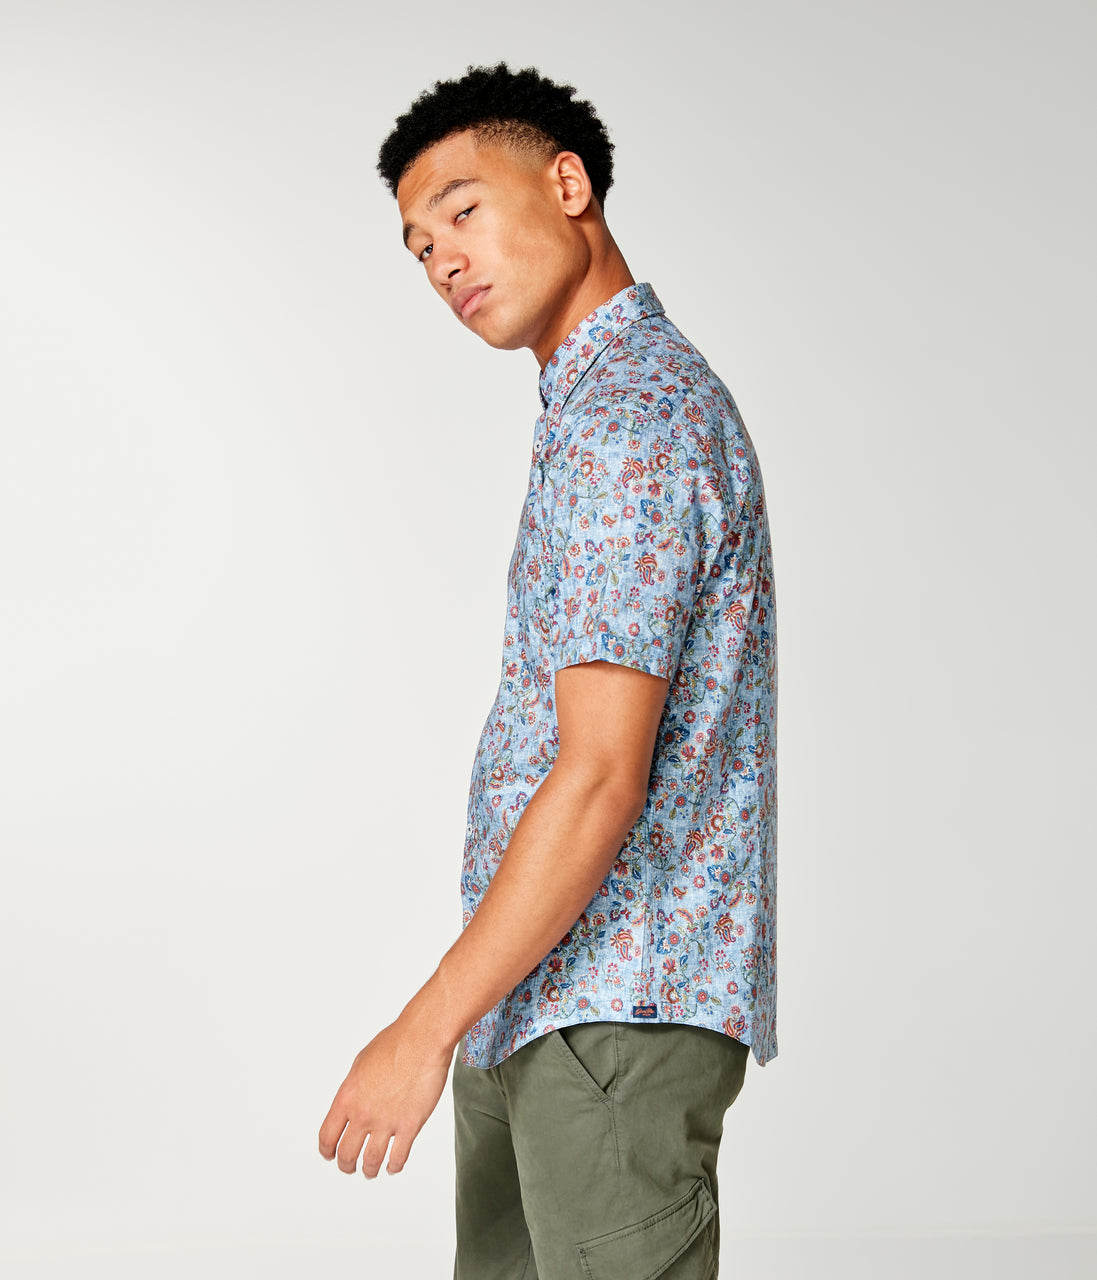 Woven On-Point Shirt - Indigo Asia Floral - Good Man Brand - On-Point Print Shirt Short Sleeve - Indigo Asia Floral